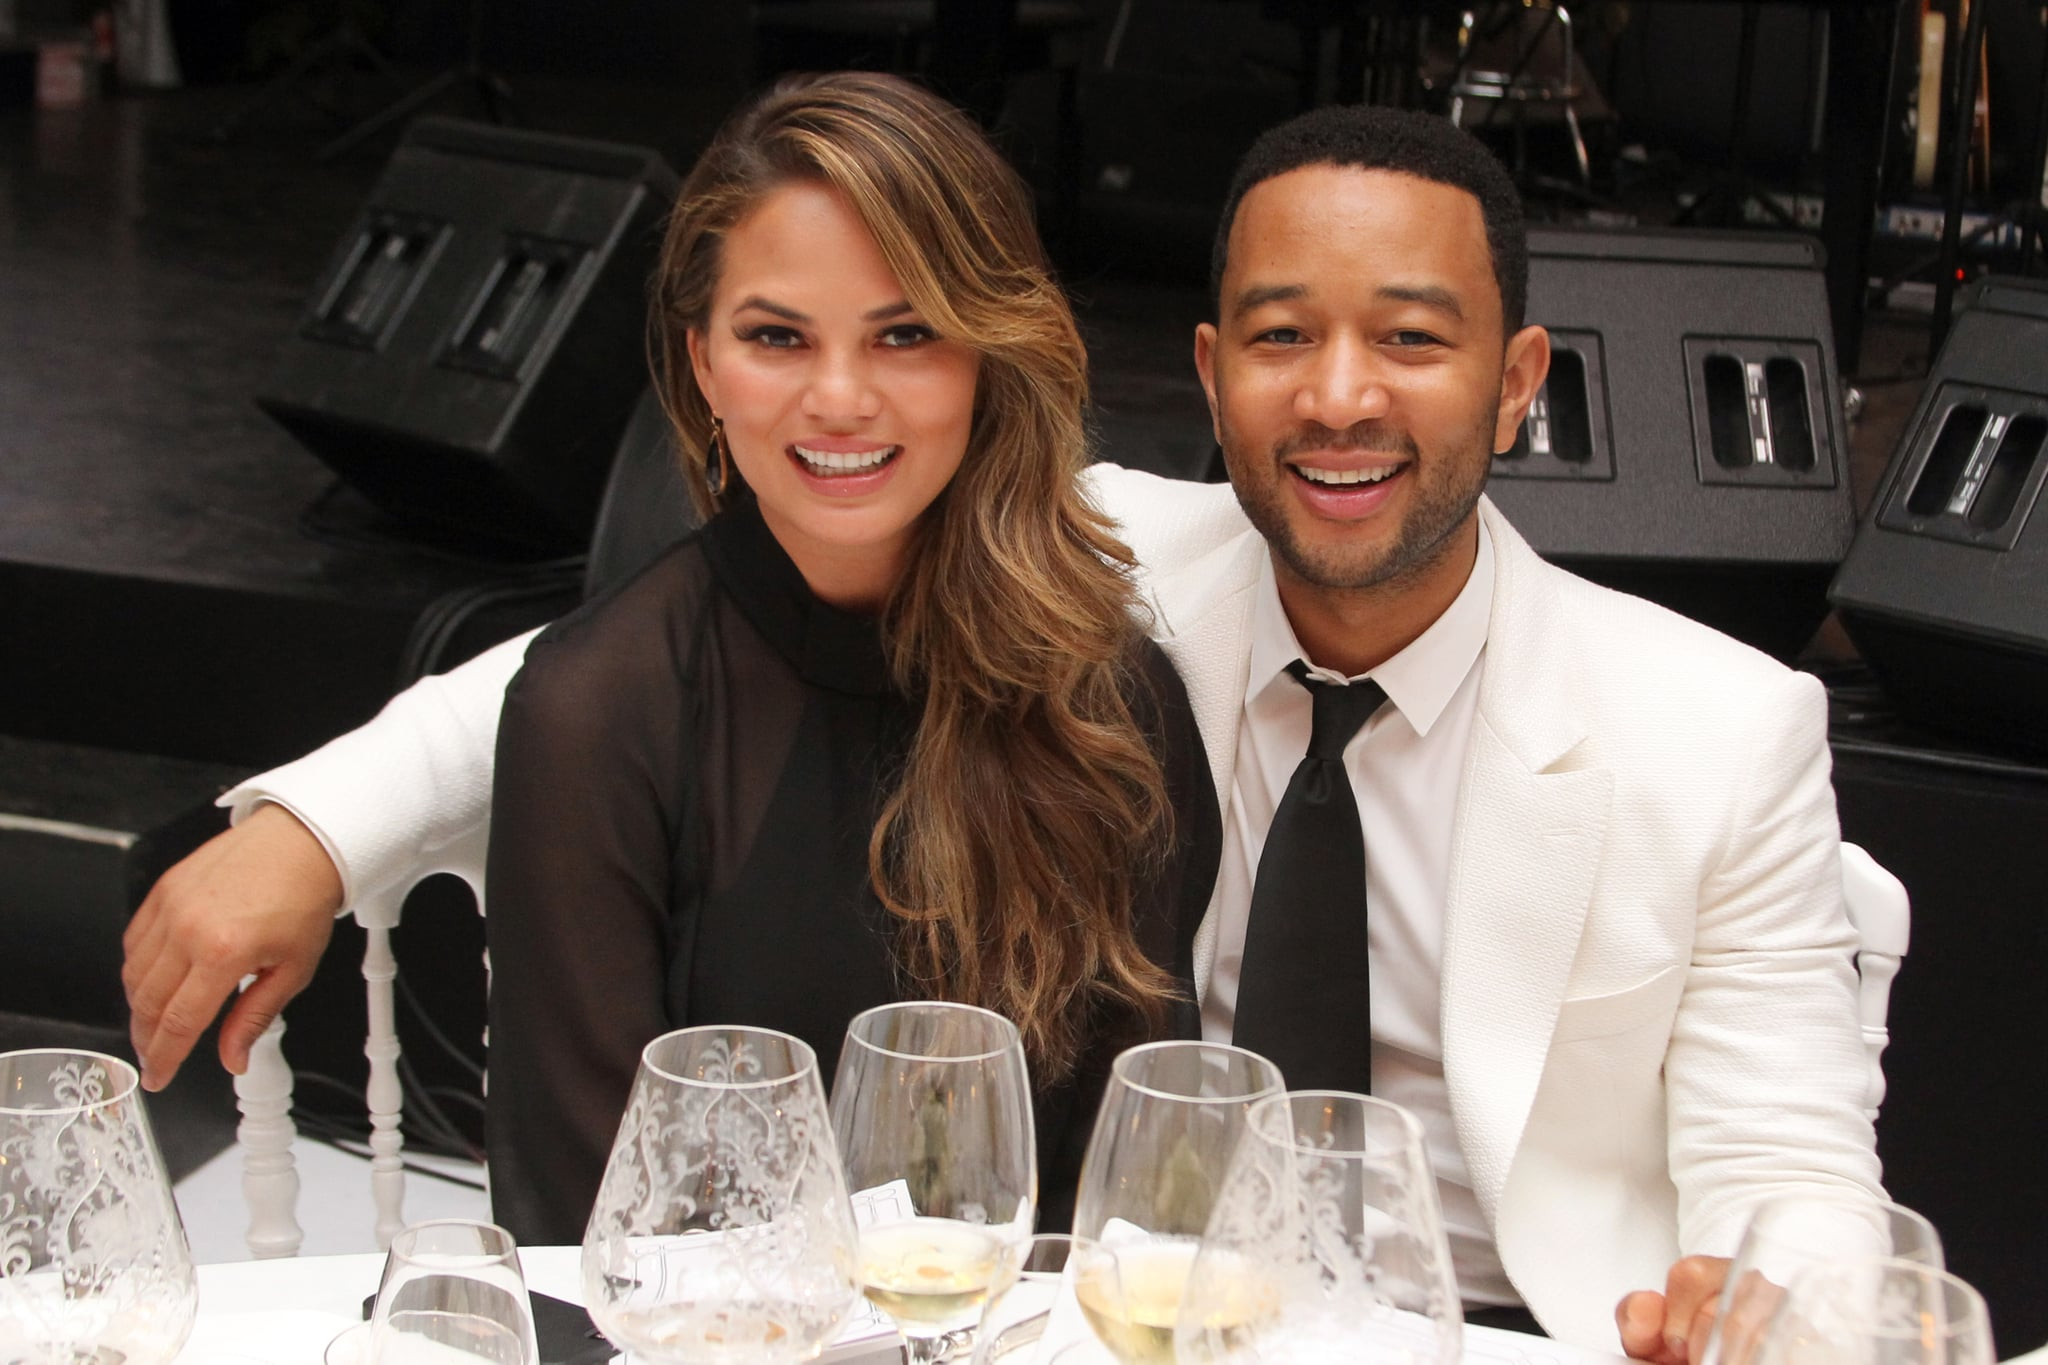 FLORENCE, ITALY - SEPTEMBER 05:  Chrissy Teigen and John Legend attend the White Party Dinner Hosted by Andrea and Veronica Bocelli Celebrating Celebrity Fight Night In Italy Benefitting The Andrea Bocelli Foundation and The Muhammad Ali Parkinson centre on September 5, 2014 at the Bocelli Residence in Forte dei Marme, Italy.  (Photo by Andrew Goodman/Getty Images for Celebrity Fight Night)